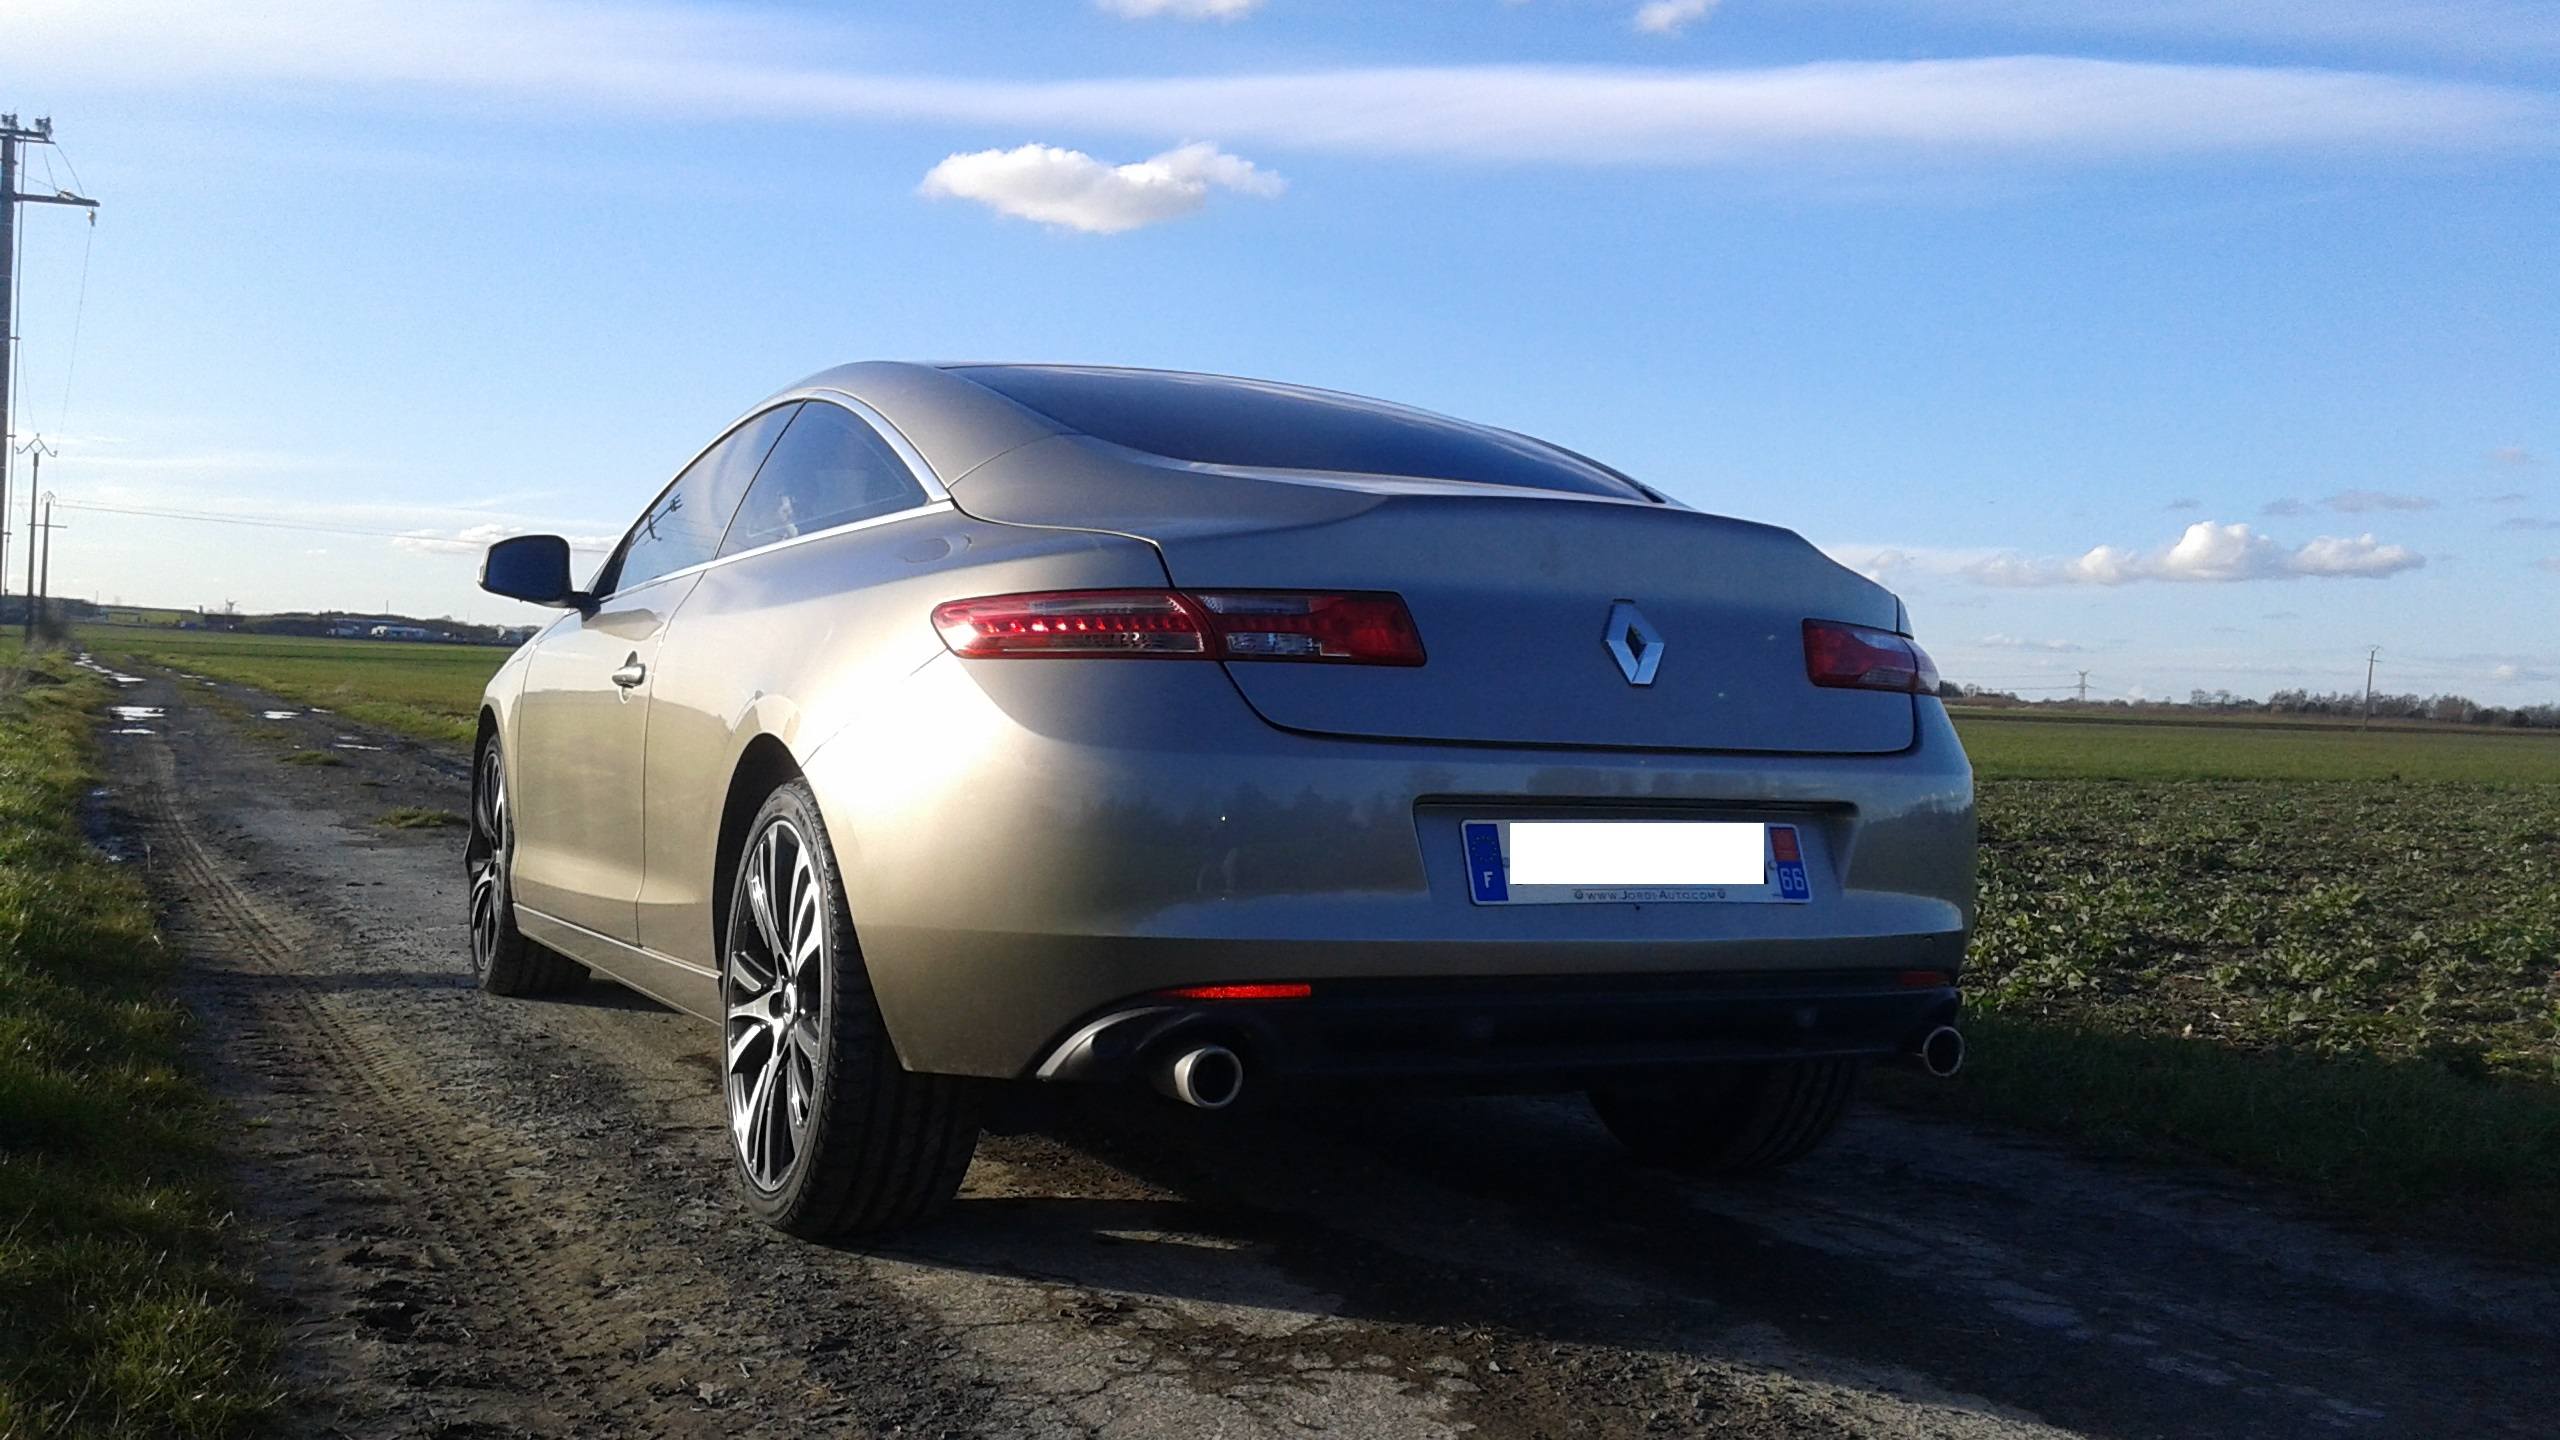 [nathanjo] Laguna III coupé initiale 3.0 dCi 235 - Page 4 20160304170312